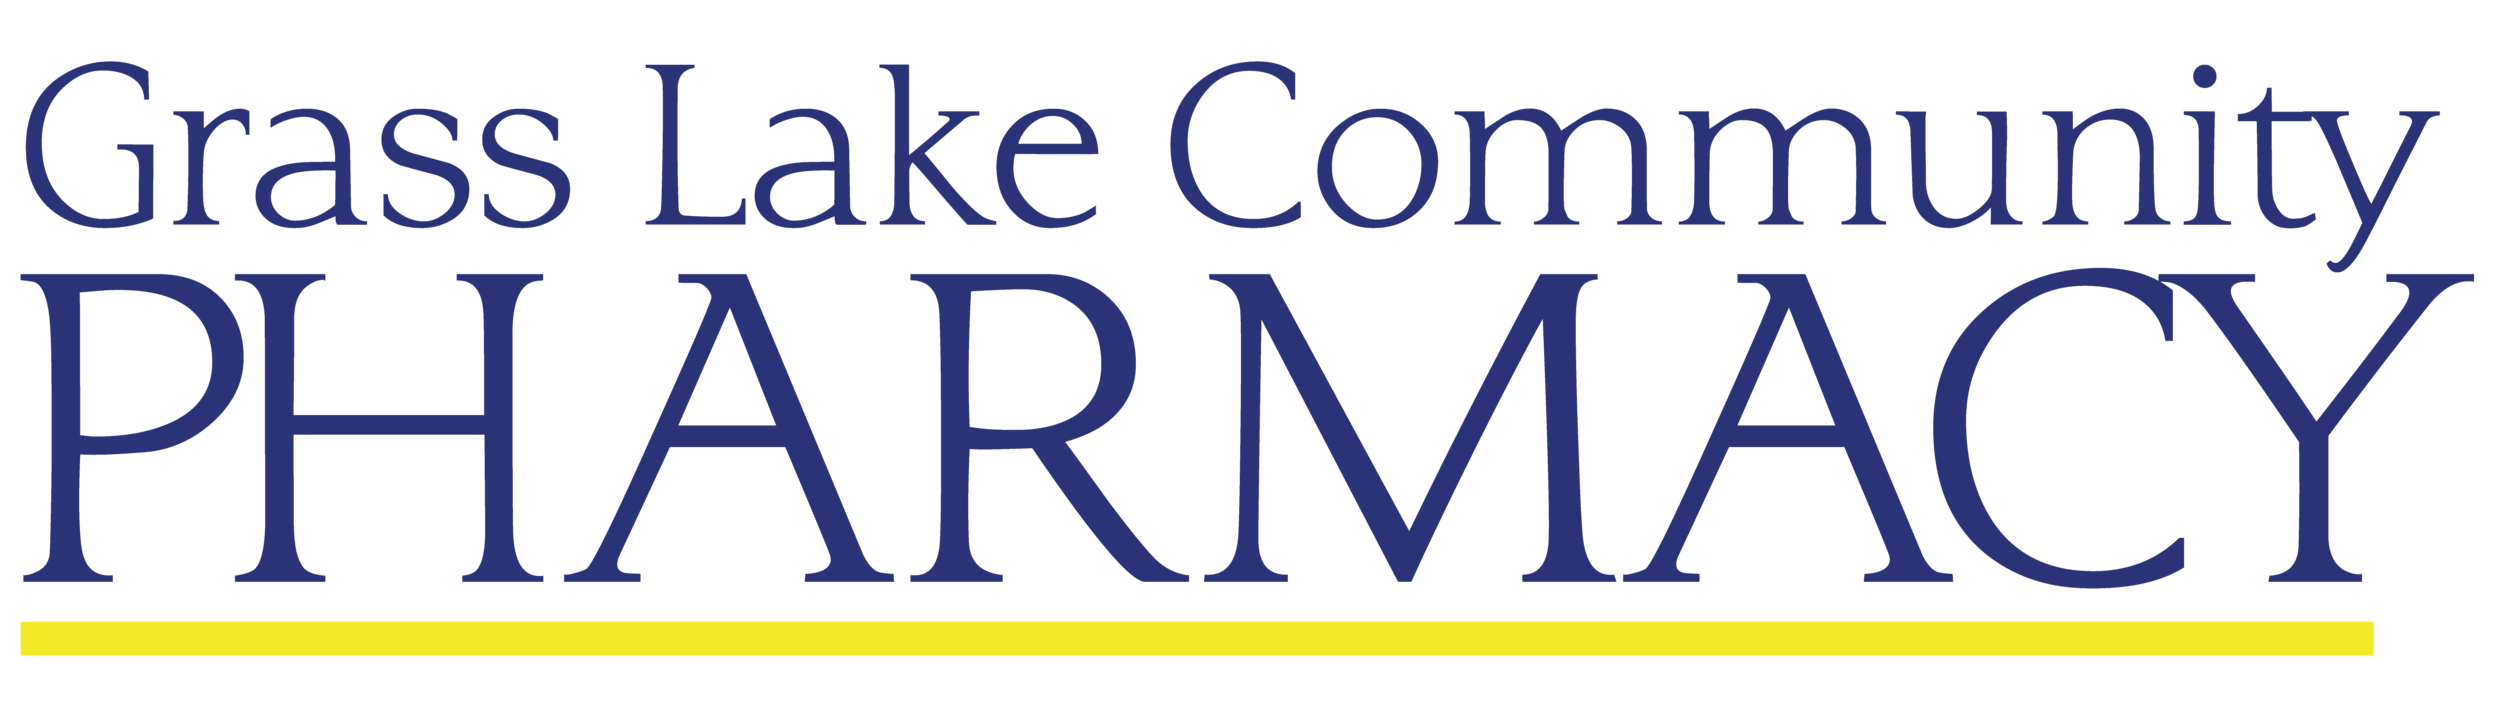 Grass-Lake-Community-Pharmacy-Logo-02.png